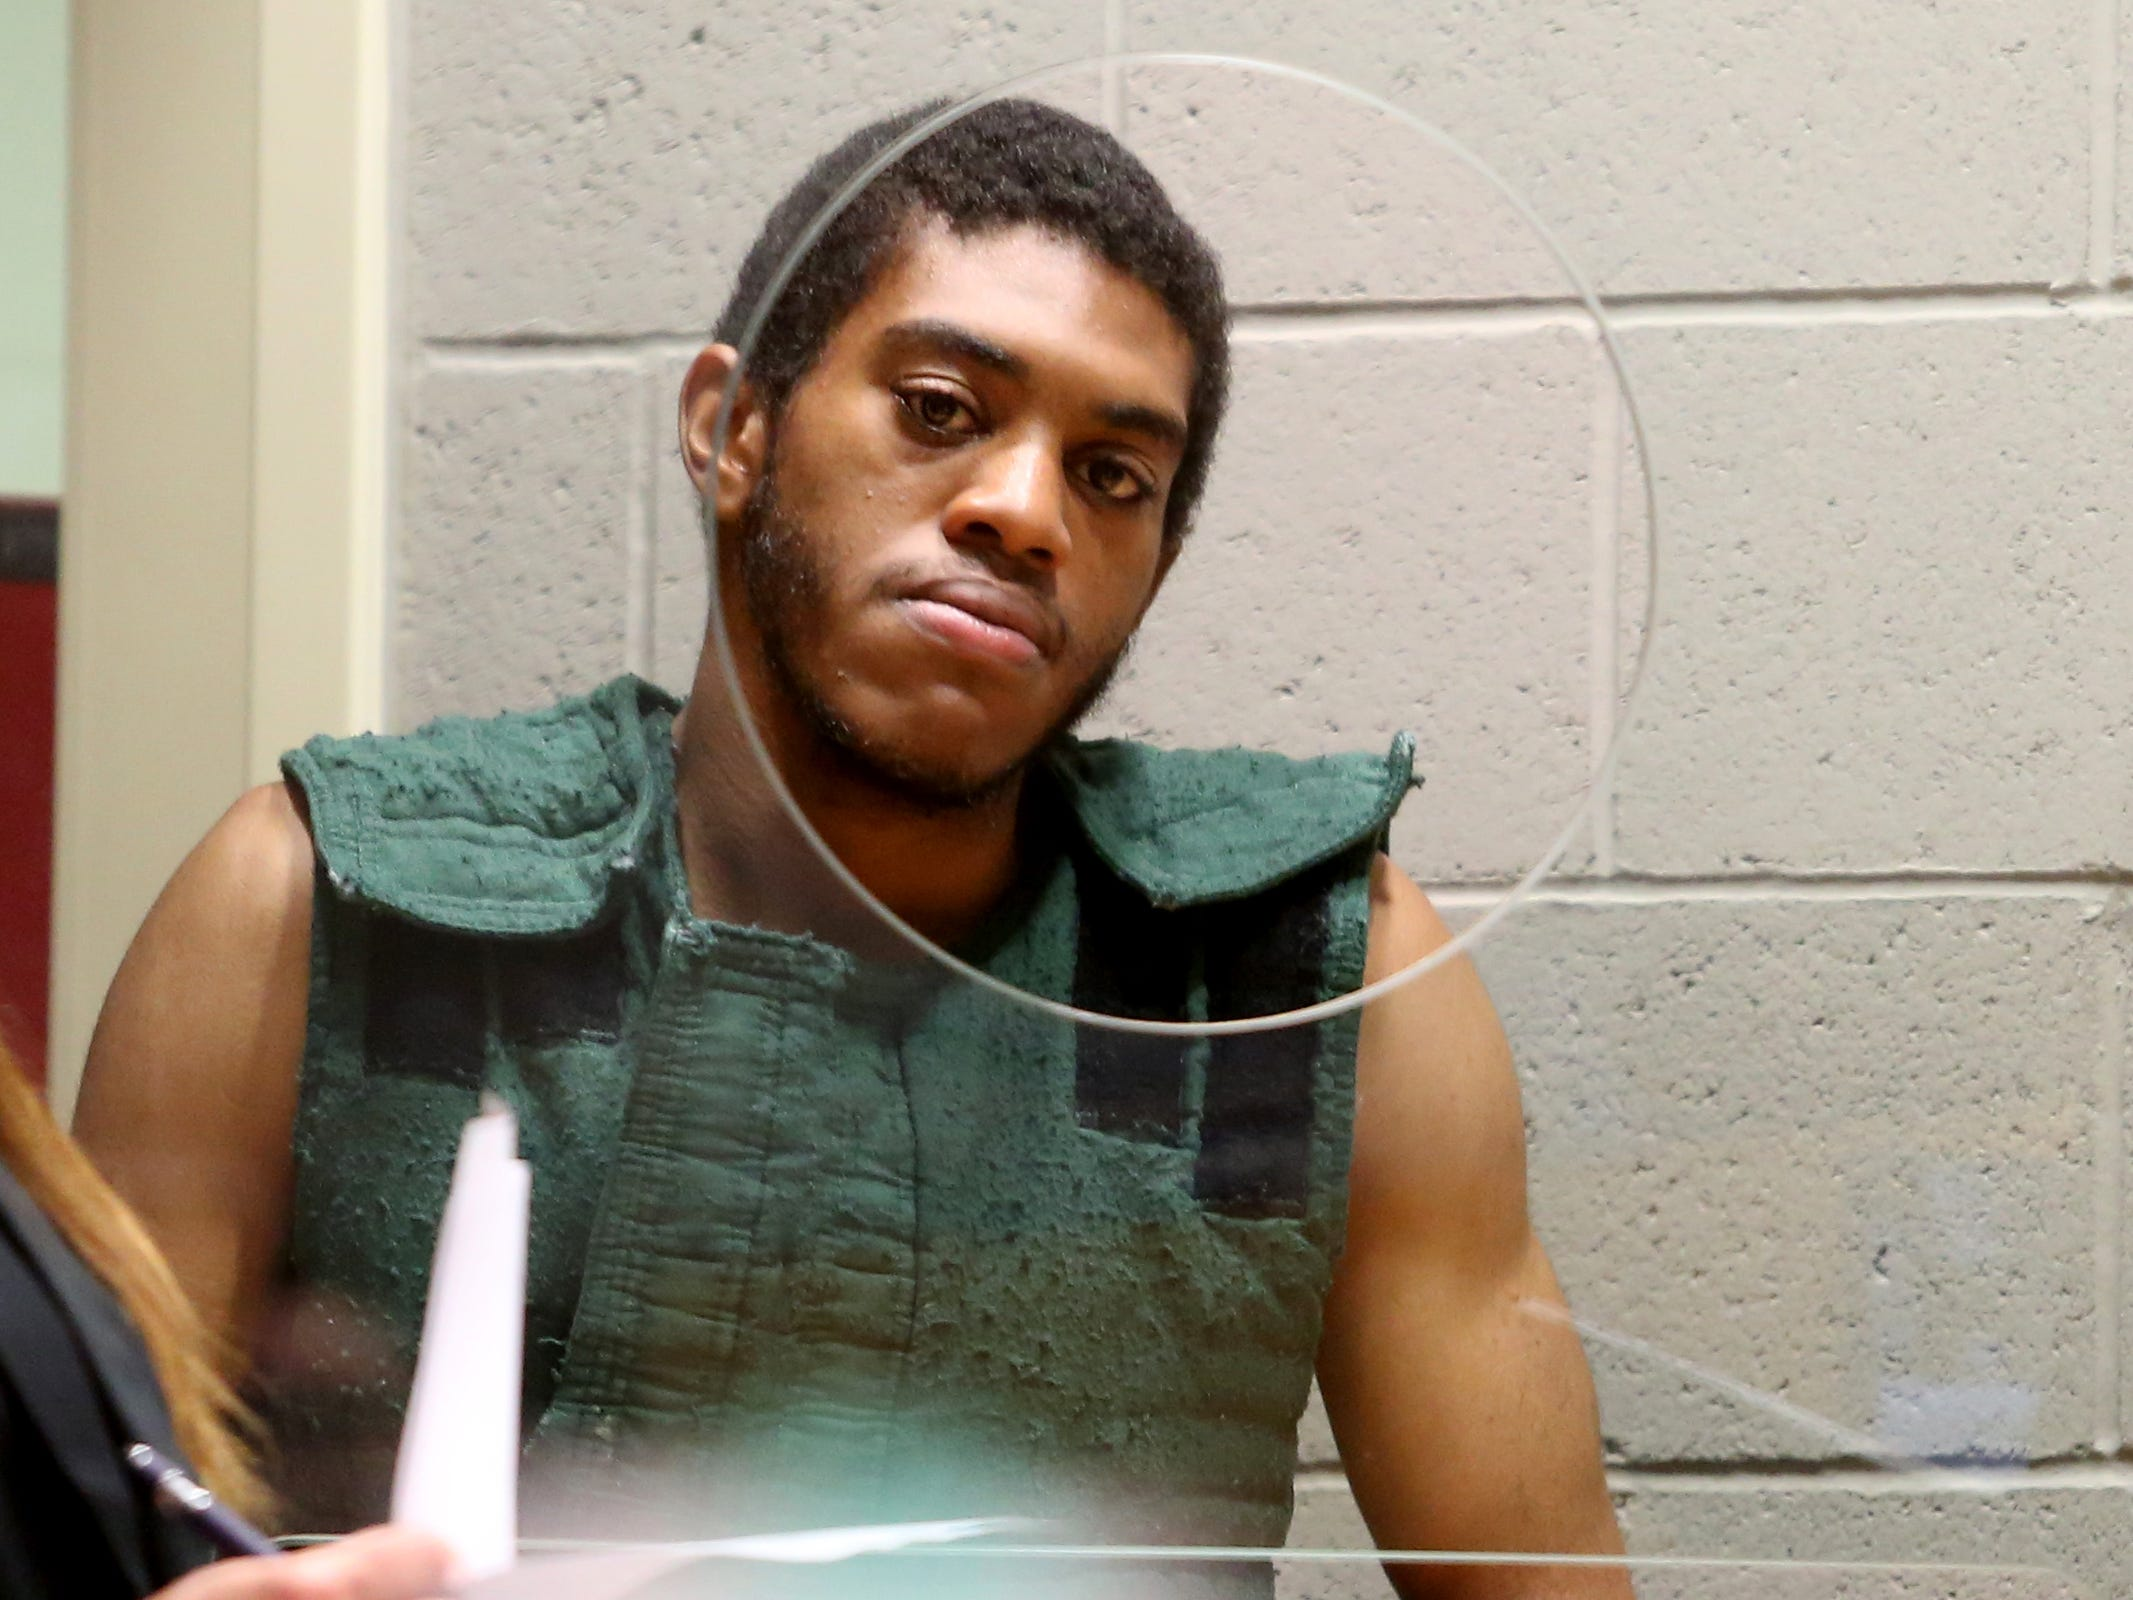 Keonte Caldwell appears for his arraignment on two aggravated murder charges and one attempted aggravated murder charge at the Marion County Court Annex in Salem on May 9, 2019. He and another man charged in the shooting are both being held without bail.